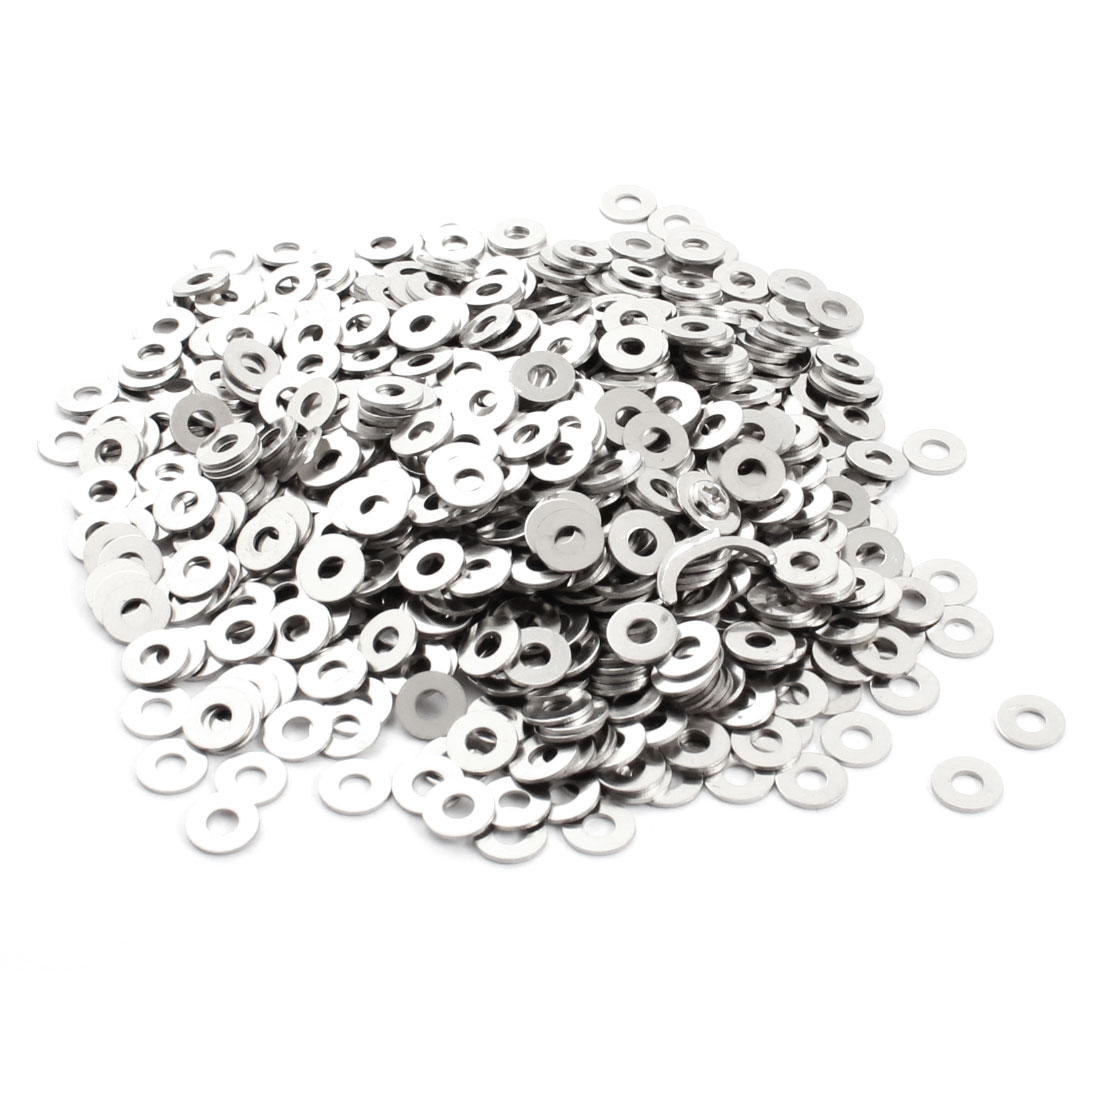 1000Pcs 3mm x 8mm x 0.6mm Circle Metal Washers Spacers Fasteners Rings